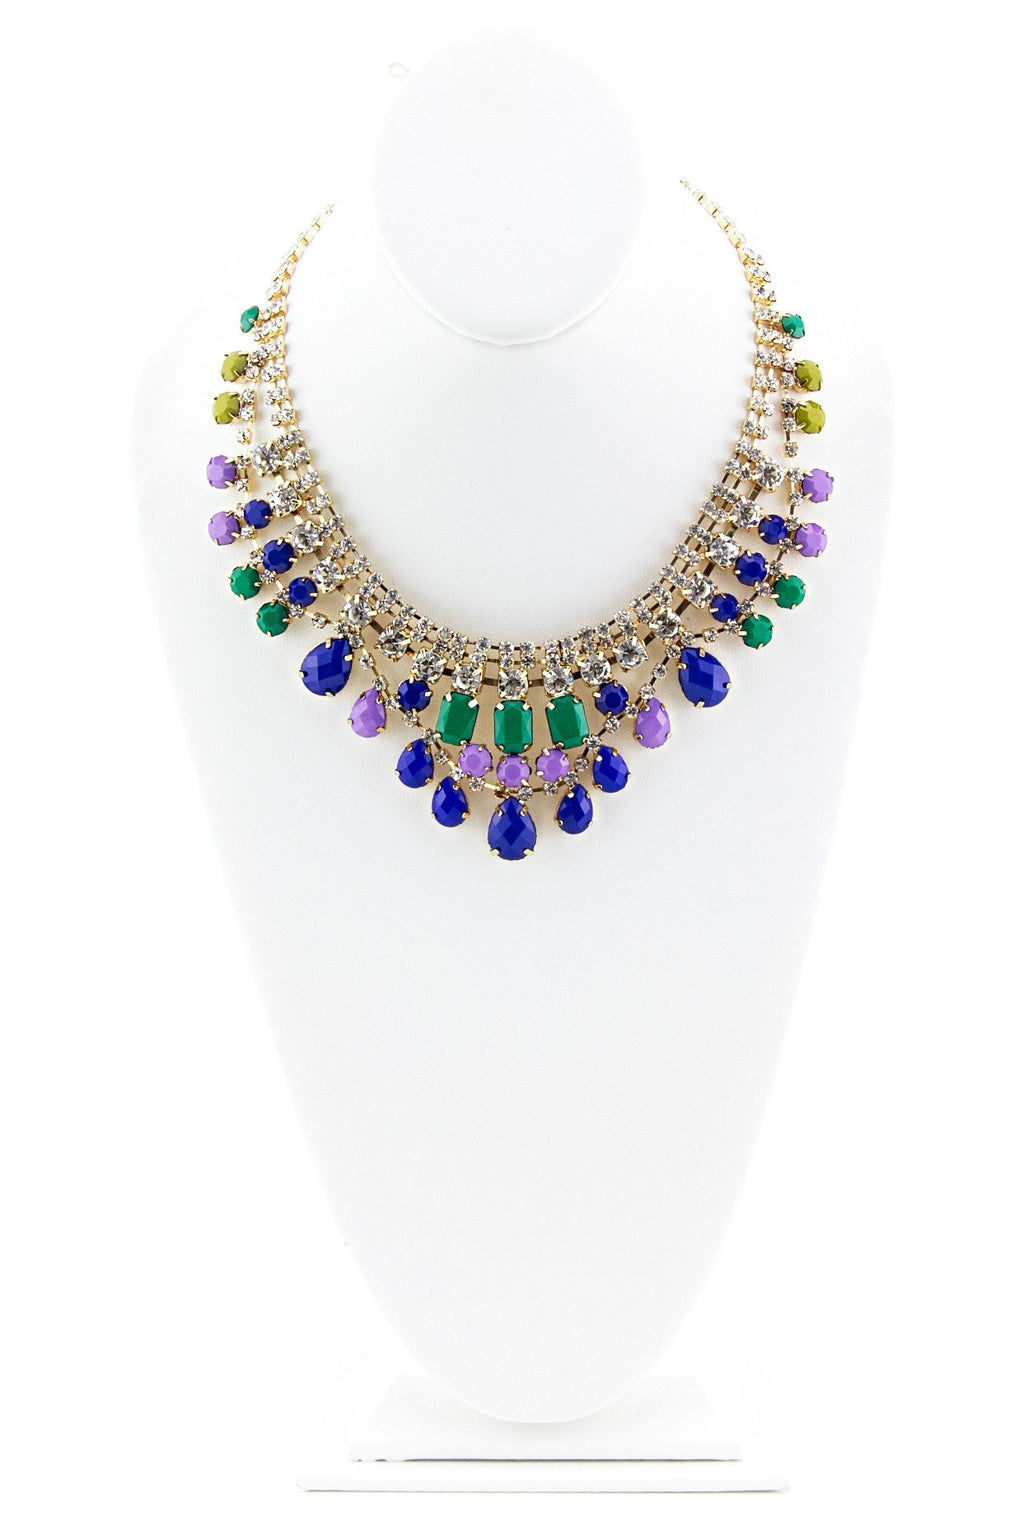 CRYSTALS & GEMS GODDESS NECKLACE - Blue/Green - Haute & Rebellious